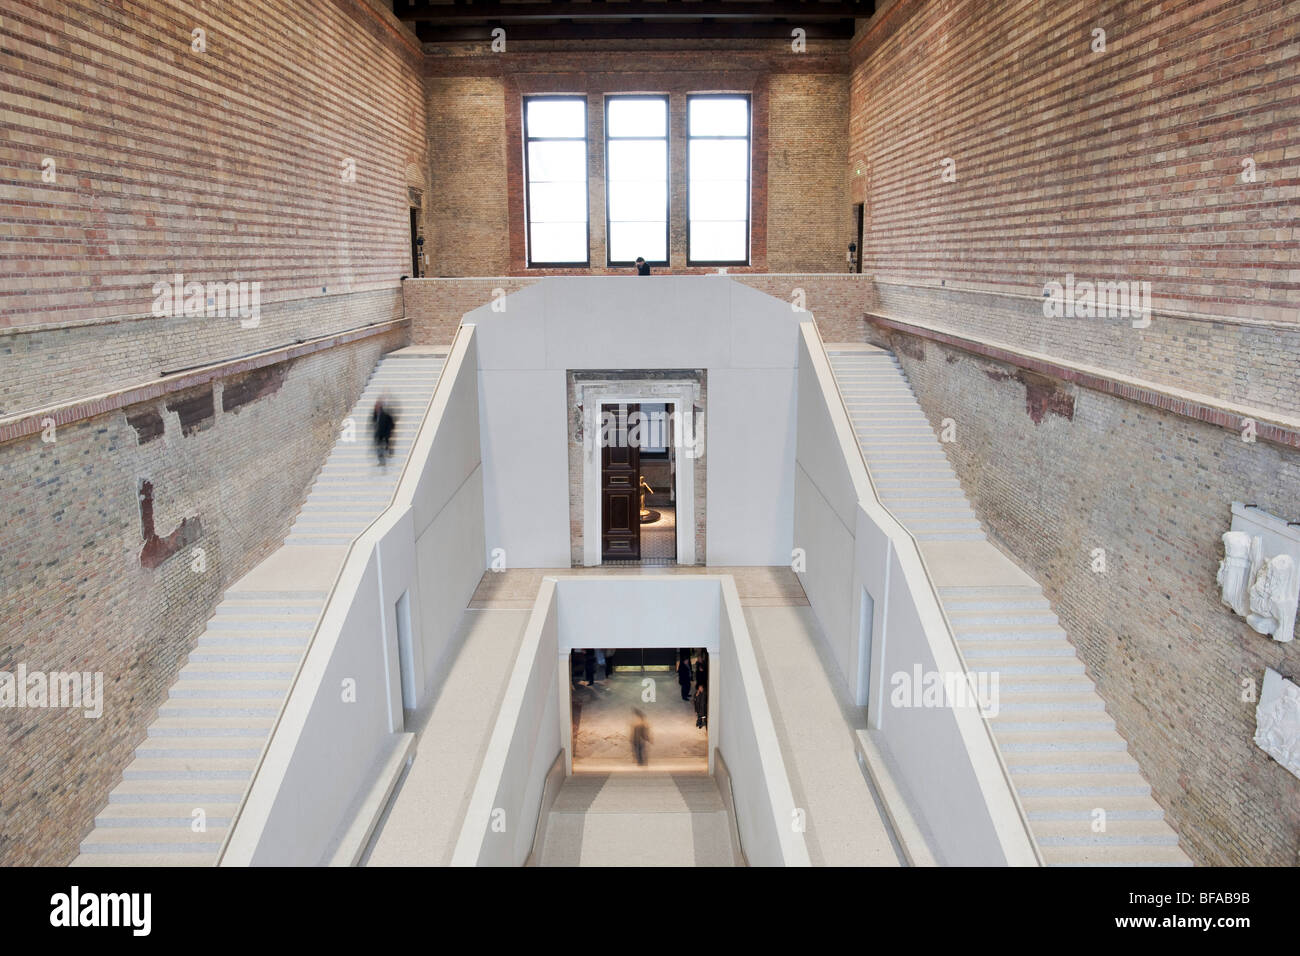 Stairhall - New Museum in Berlin Germany - Stock Image